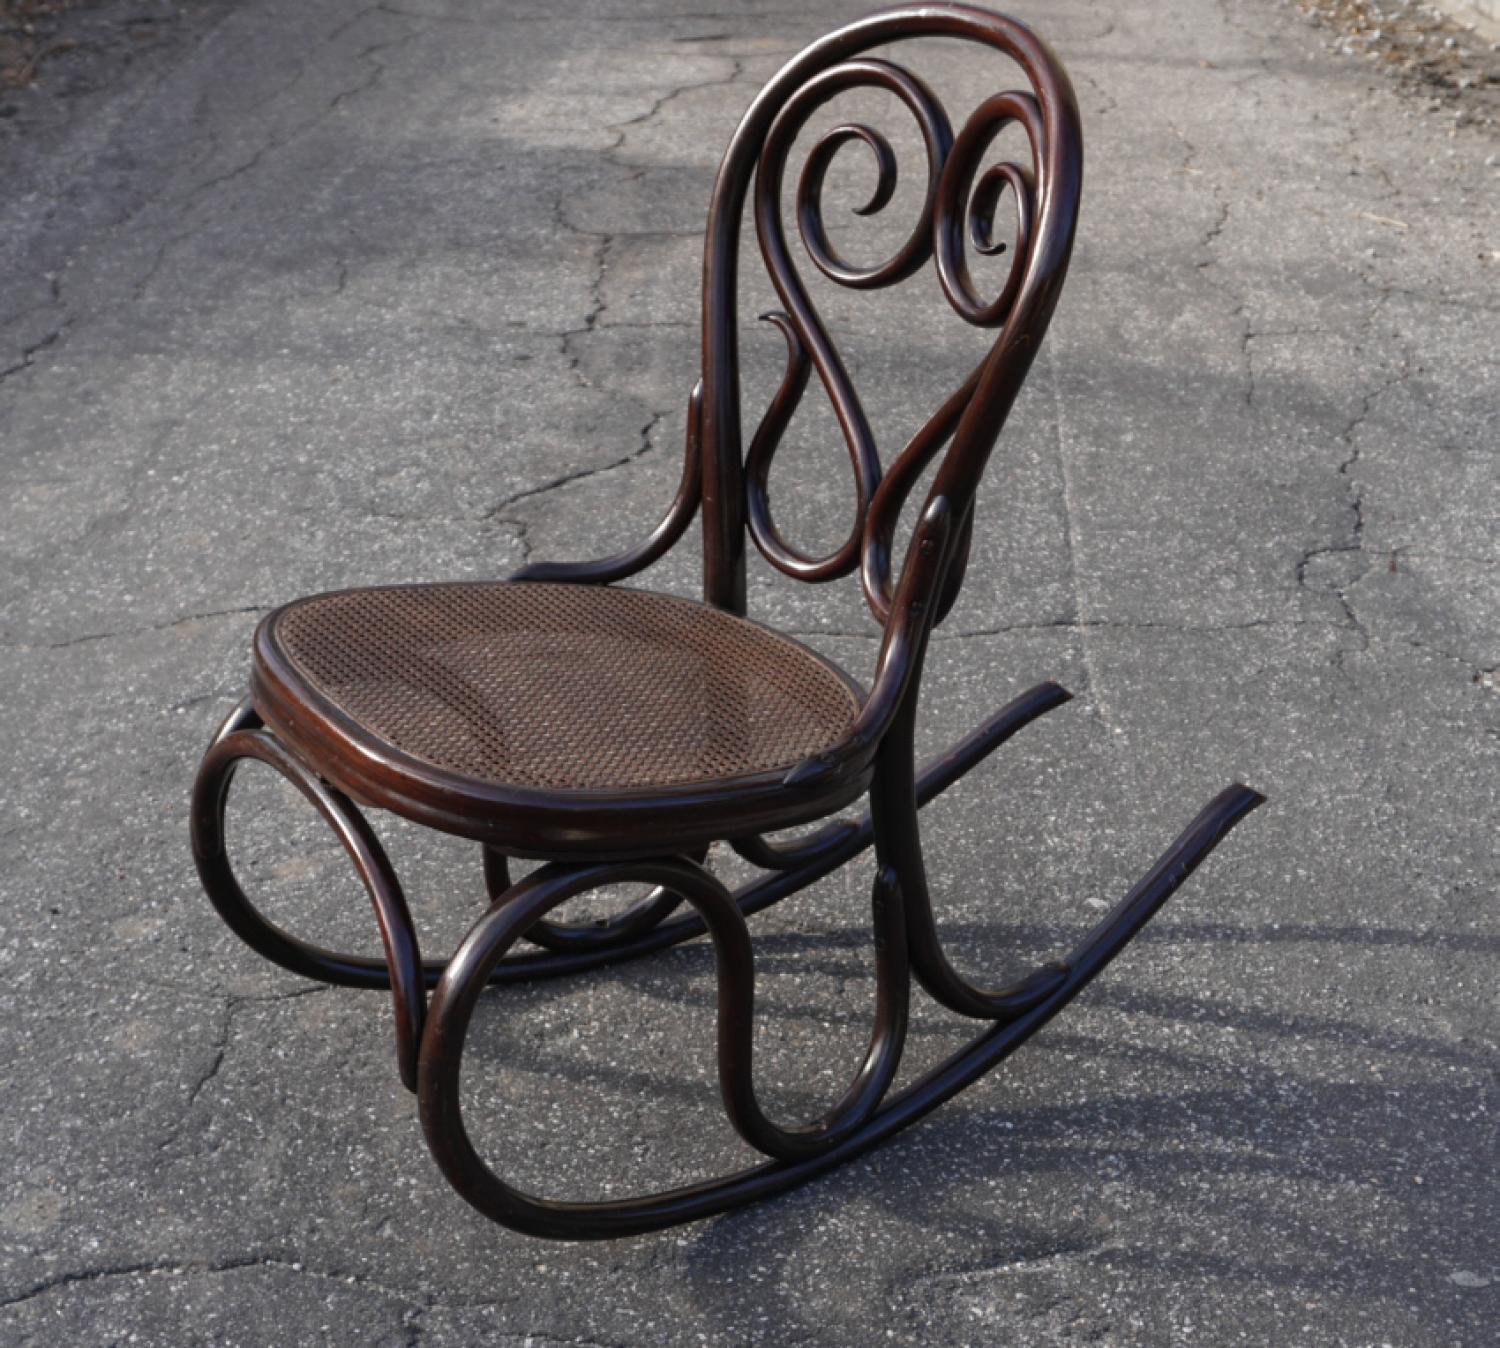 Rare antique Thonet bentwood rocker c1904